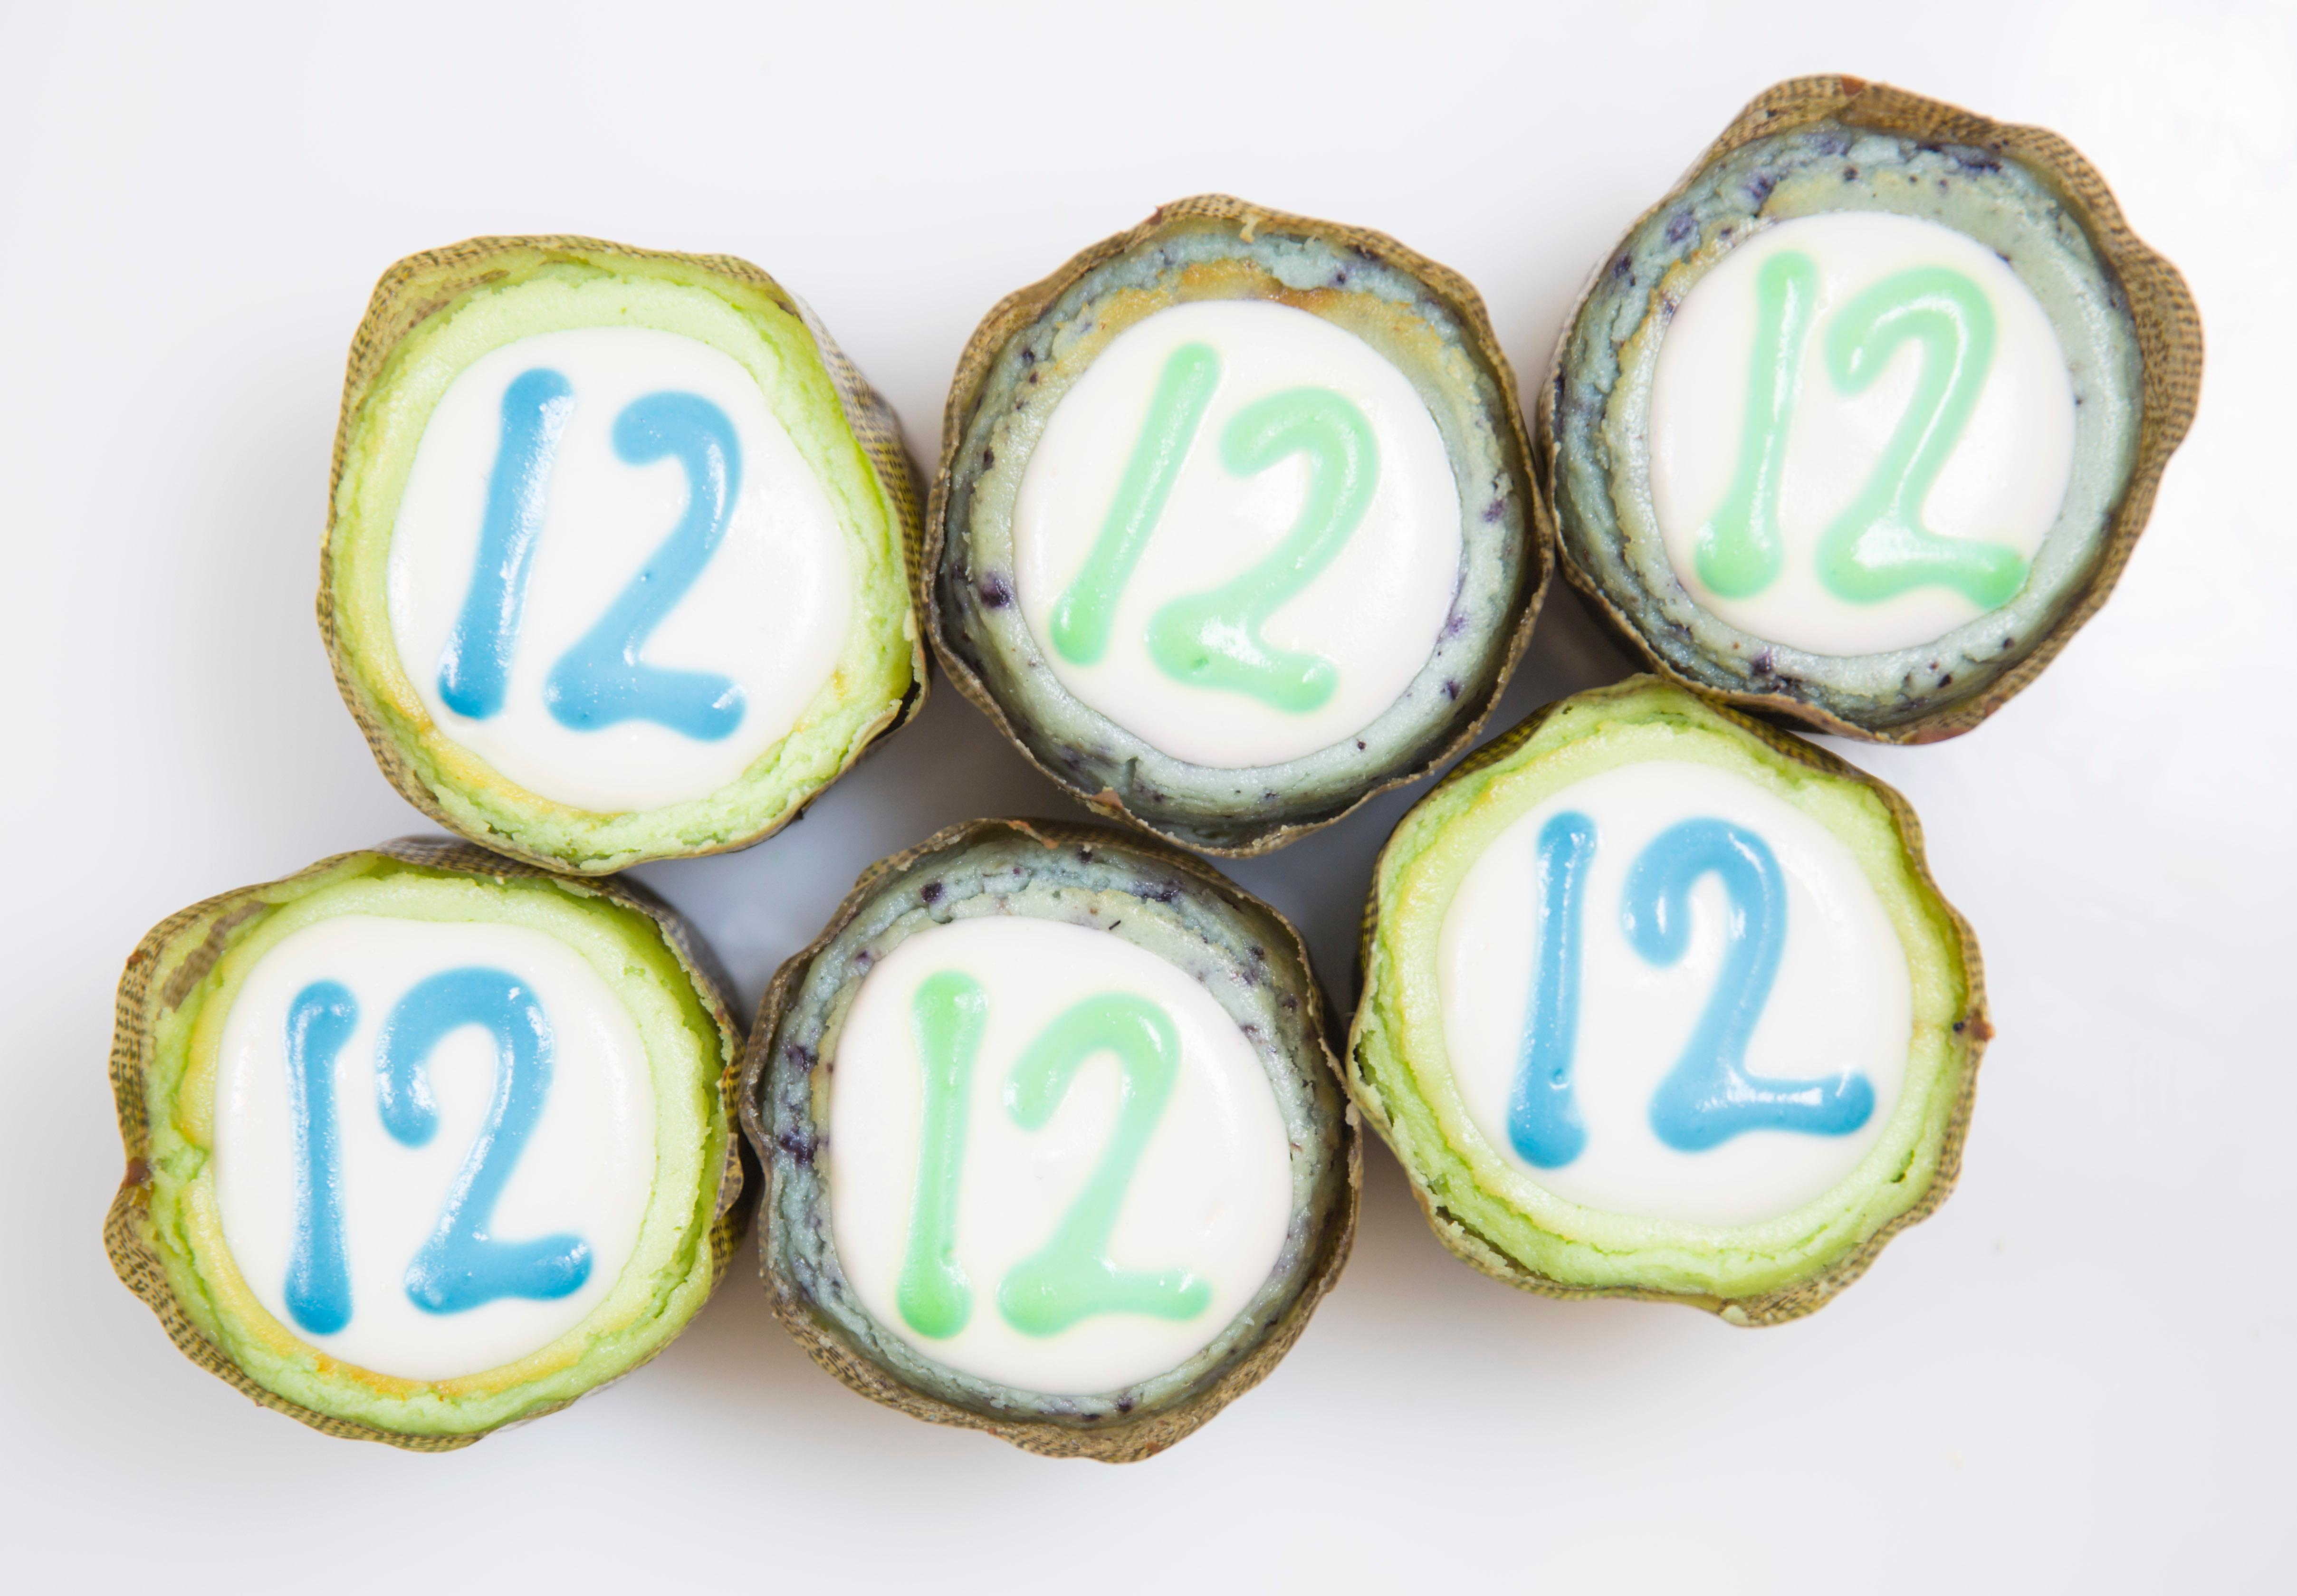 Found at The Confectional in Pike Place Market is the 12th Man Blueberry Lime Cheesecakes. (Sy Bean / Seattle Refined)